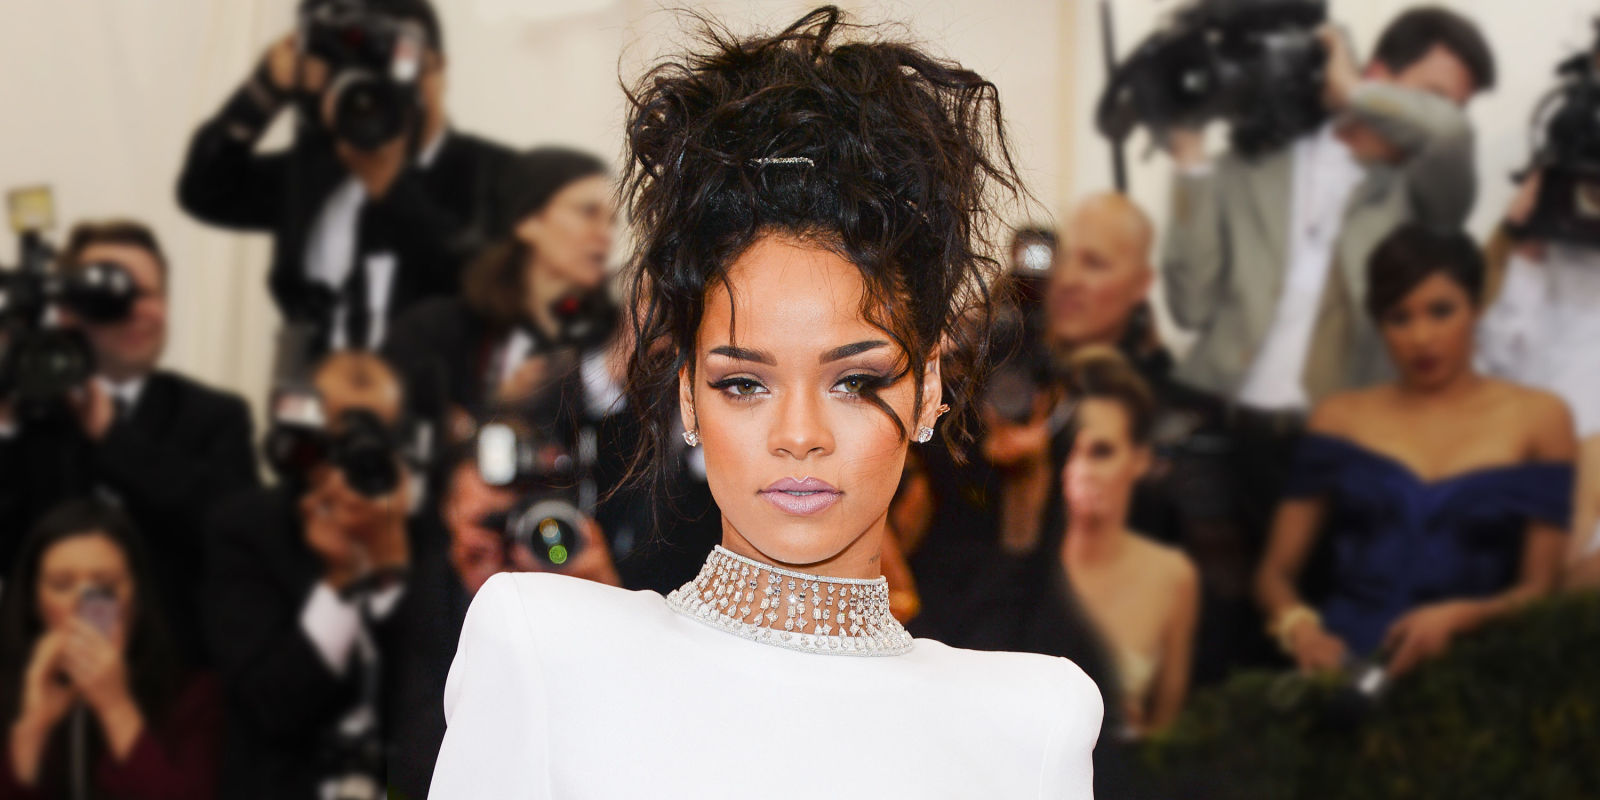 Hairstyles for Frizzy Hair - Summer Hair 2015